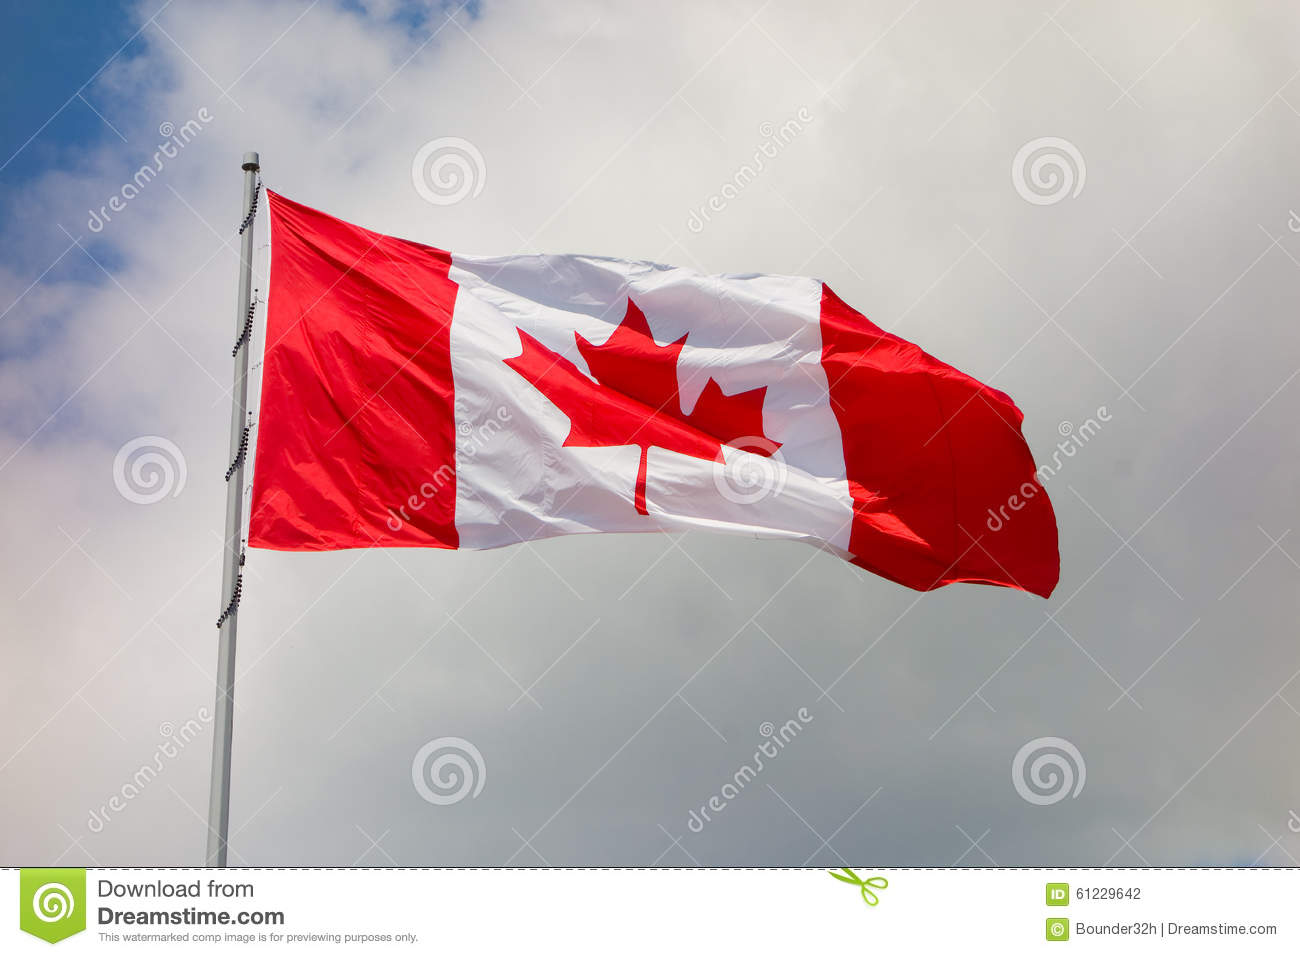 The Maple Leaf Symbol For Canada Stock Photo Image Of Clouds